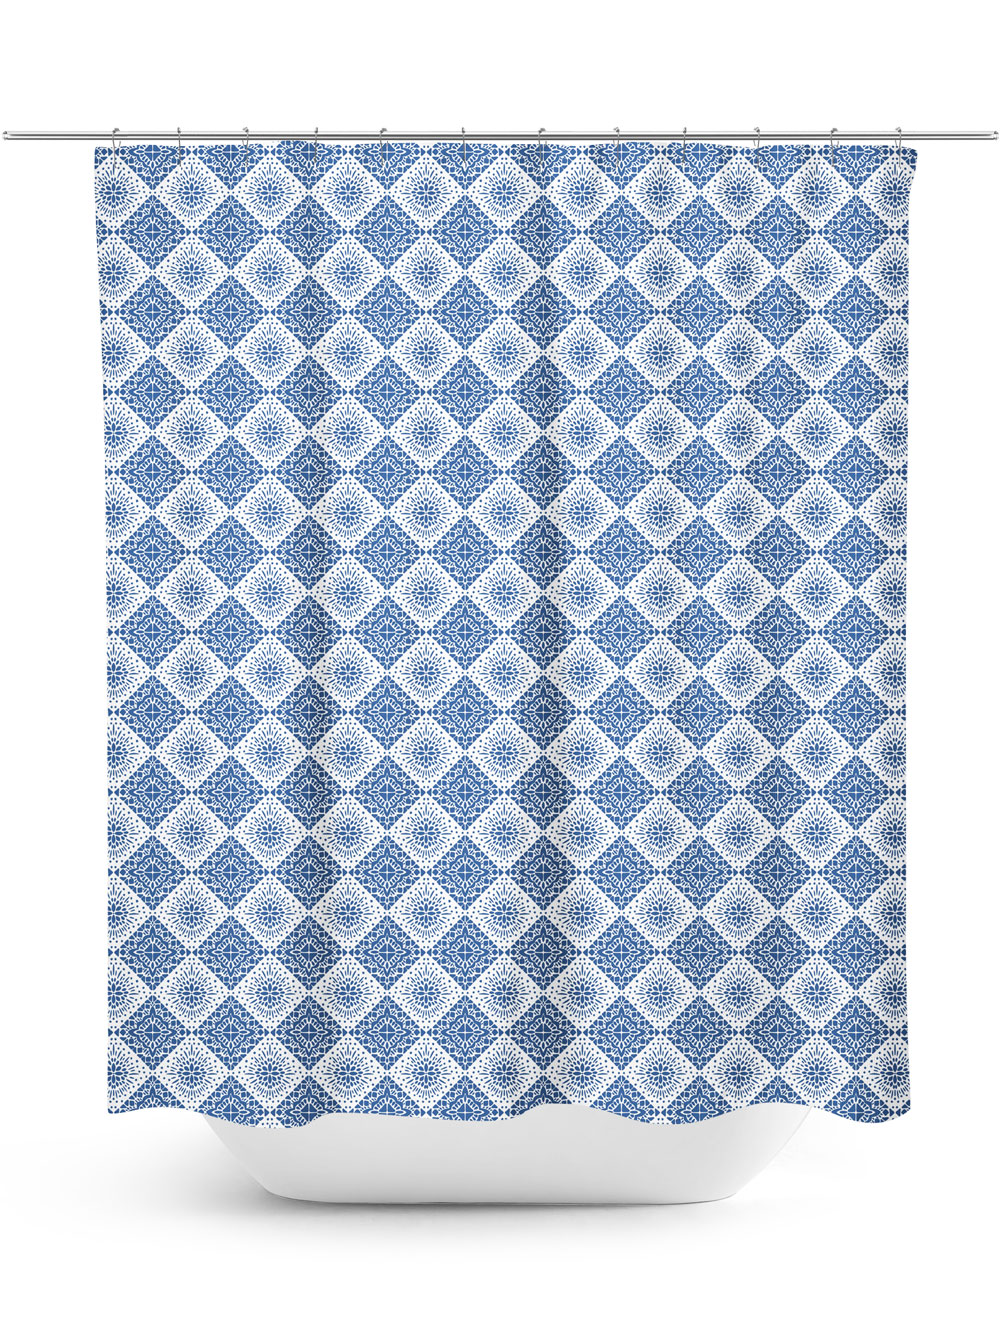 Blue and white diamond pattern shower curtain